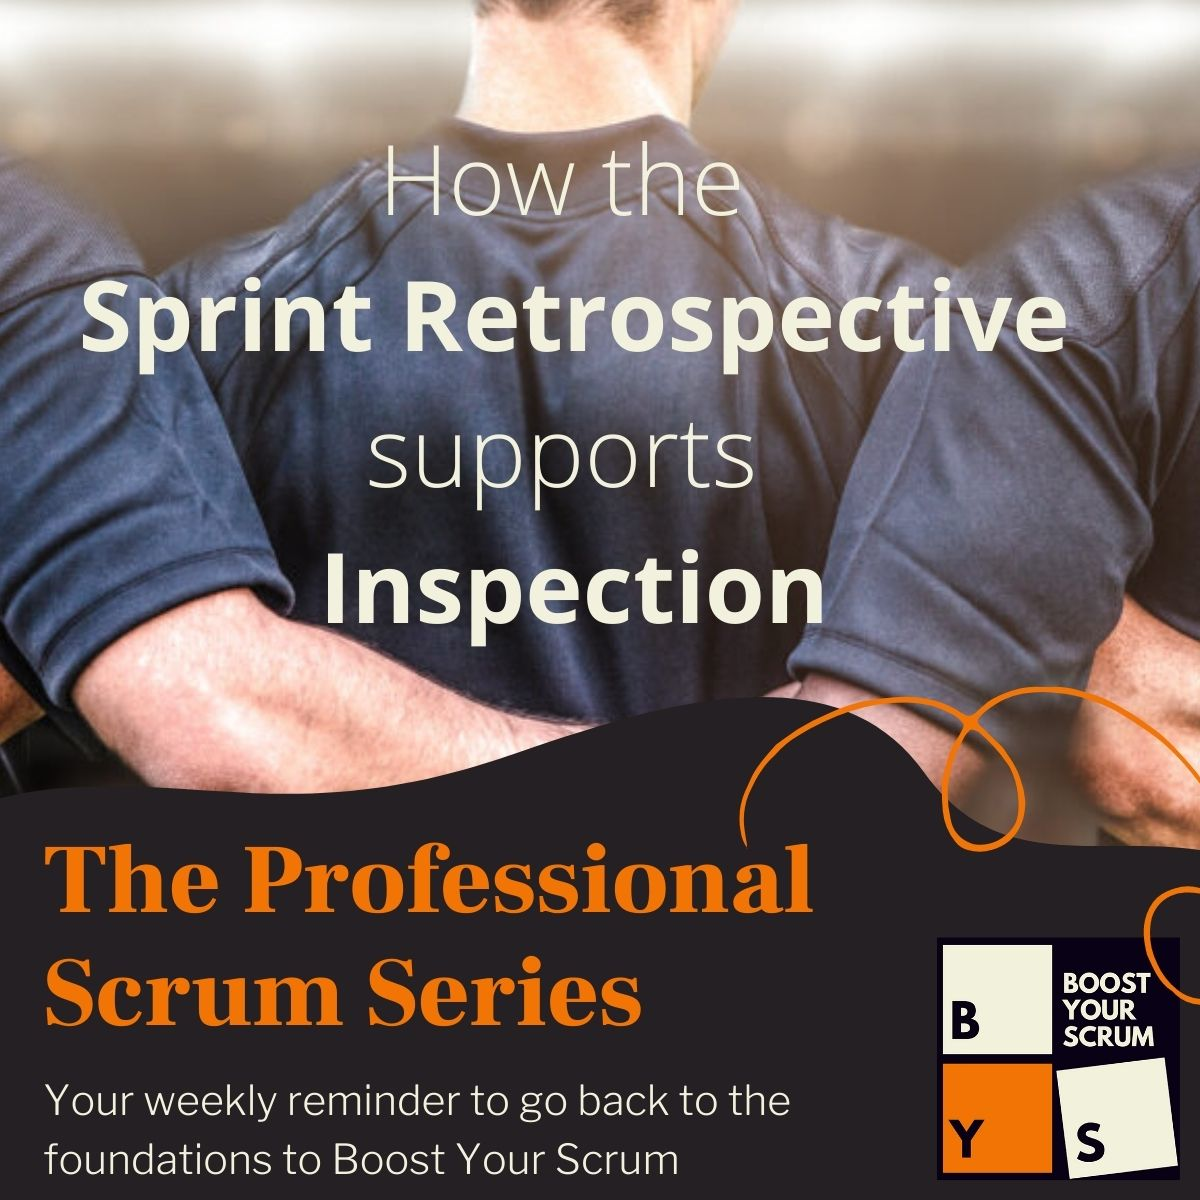 How the Sprint Retrospective supports Inspection